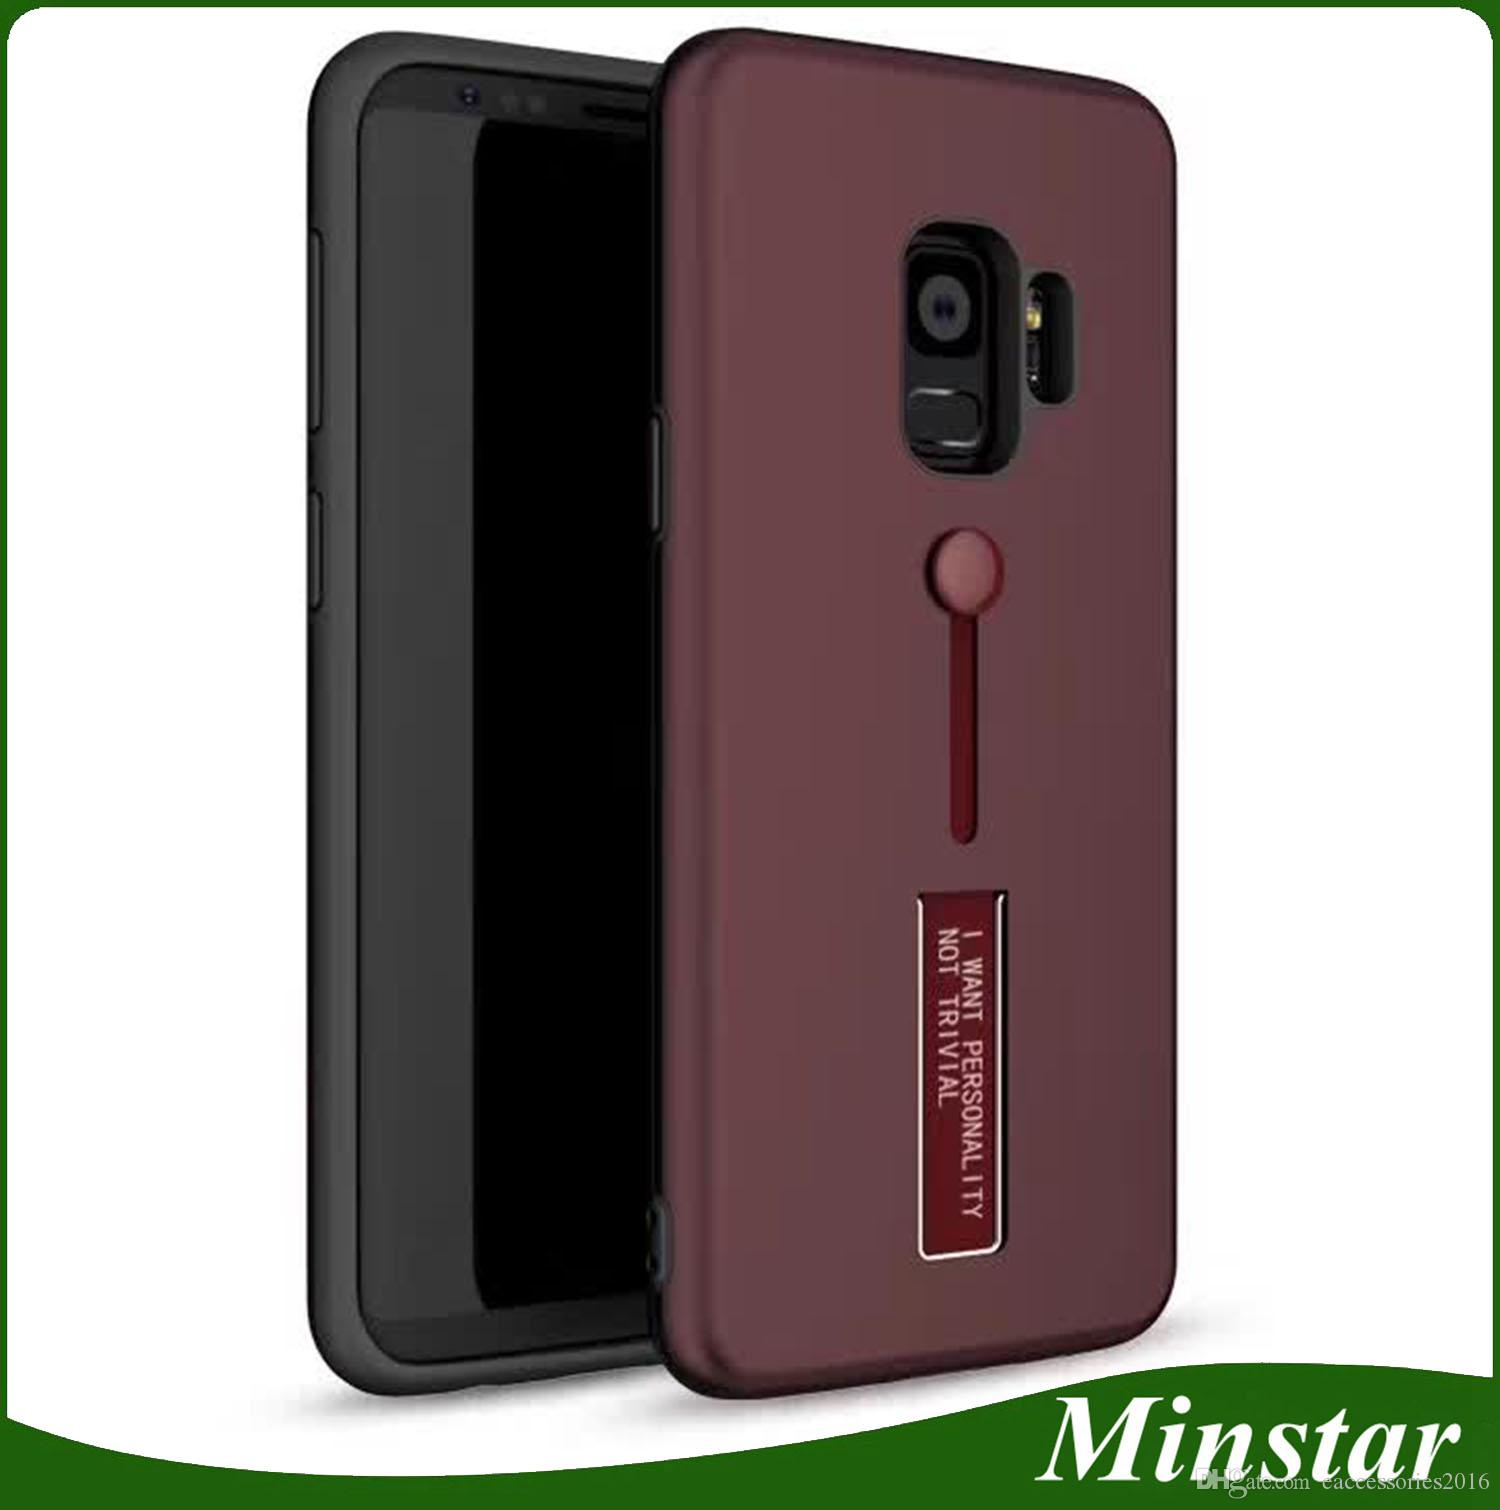 Rubber Ring Cover Shockproof Case For Samsung S9 S9 Plus S8 S8 Plus J7 Prime 2017 Usa Vertion Case Make Your Own Phone Case Cell Phone Cases From